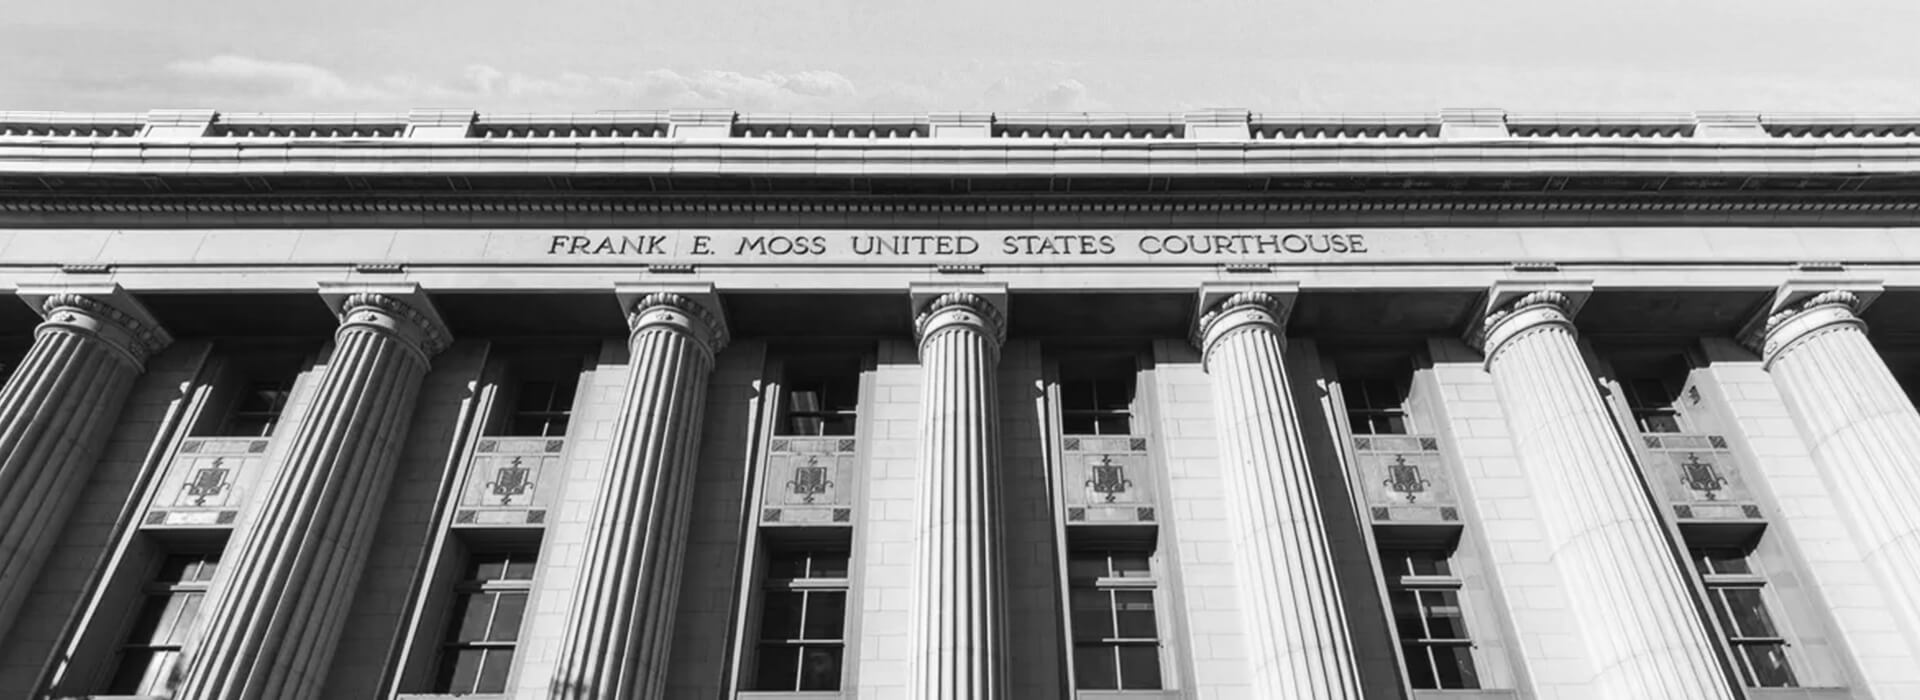 Black and White Frank E. Moss United States Courthouse